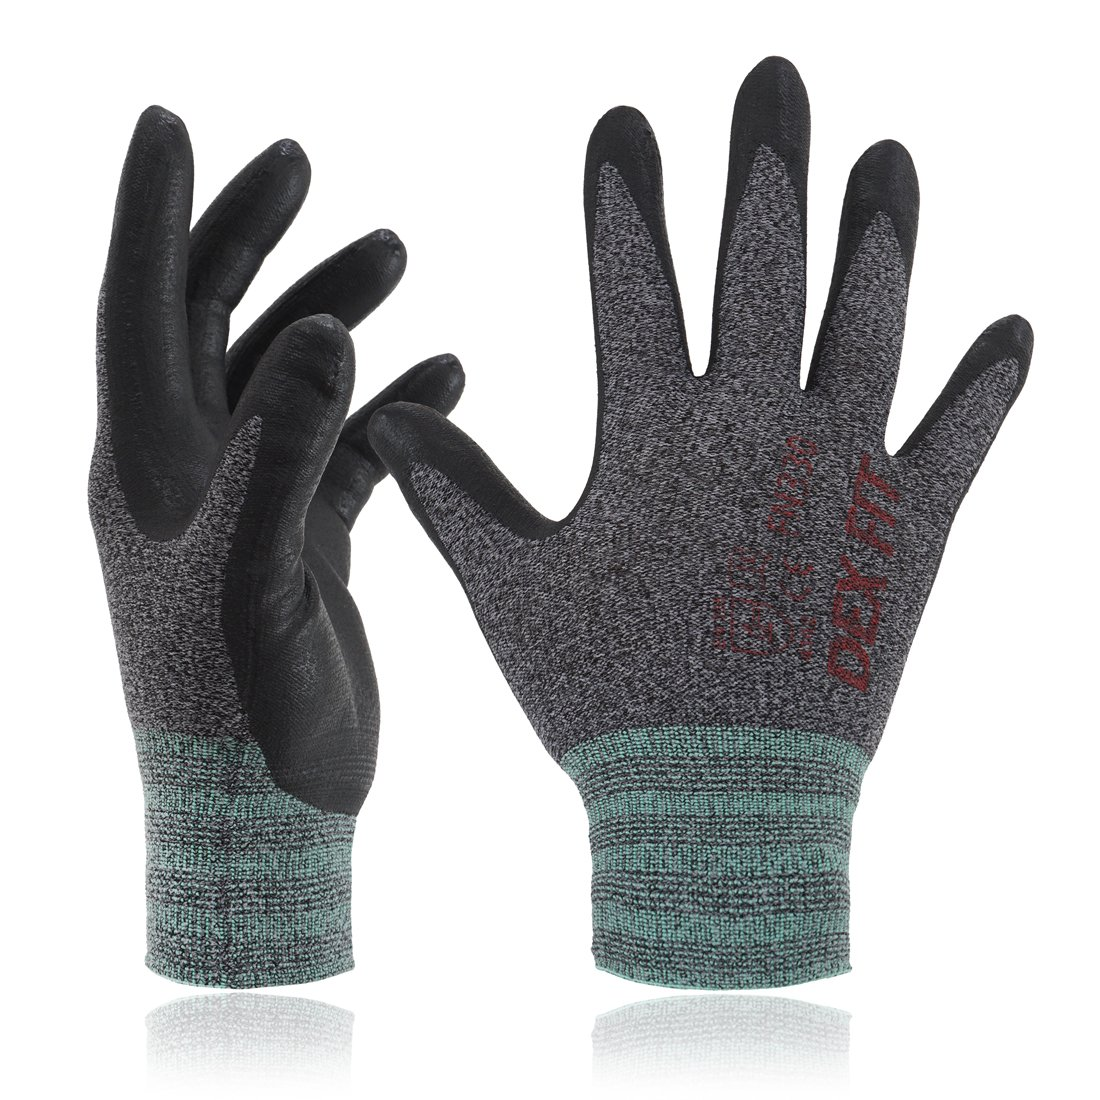 Nitrile Work Gloves FN330, 3D Comfort Stretch Fit, Power Grip, Durable Foam Coated, Smart Touch, Thin Machine Washable, Grey Medium 3 Pairs Pack MUVEEN CO. LTD FN 330